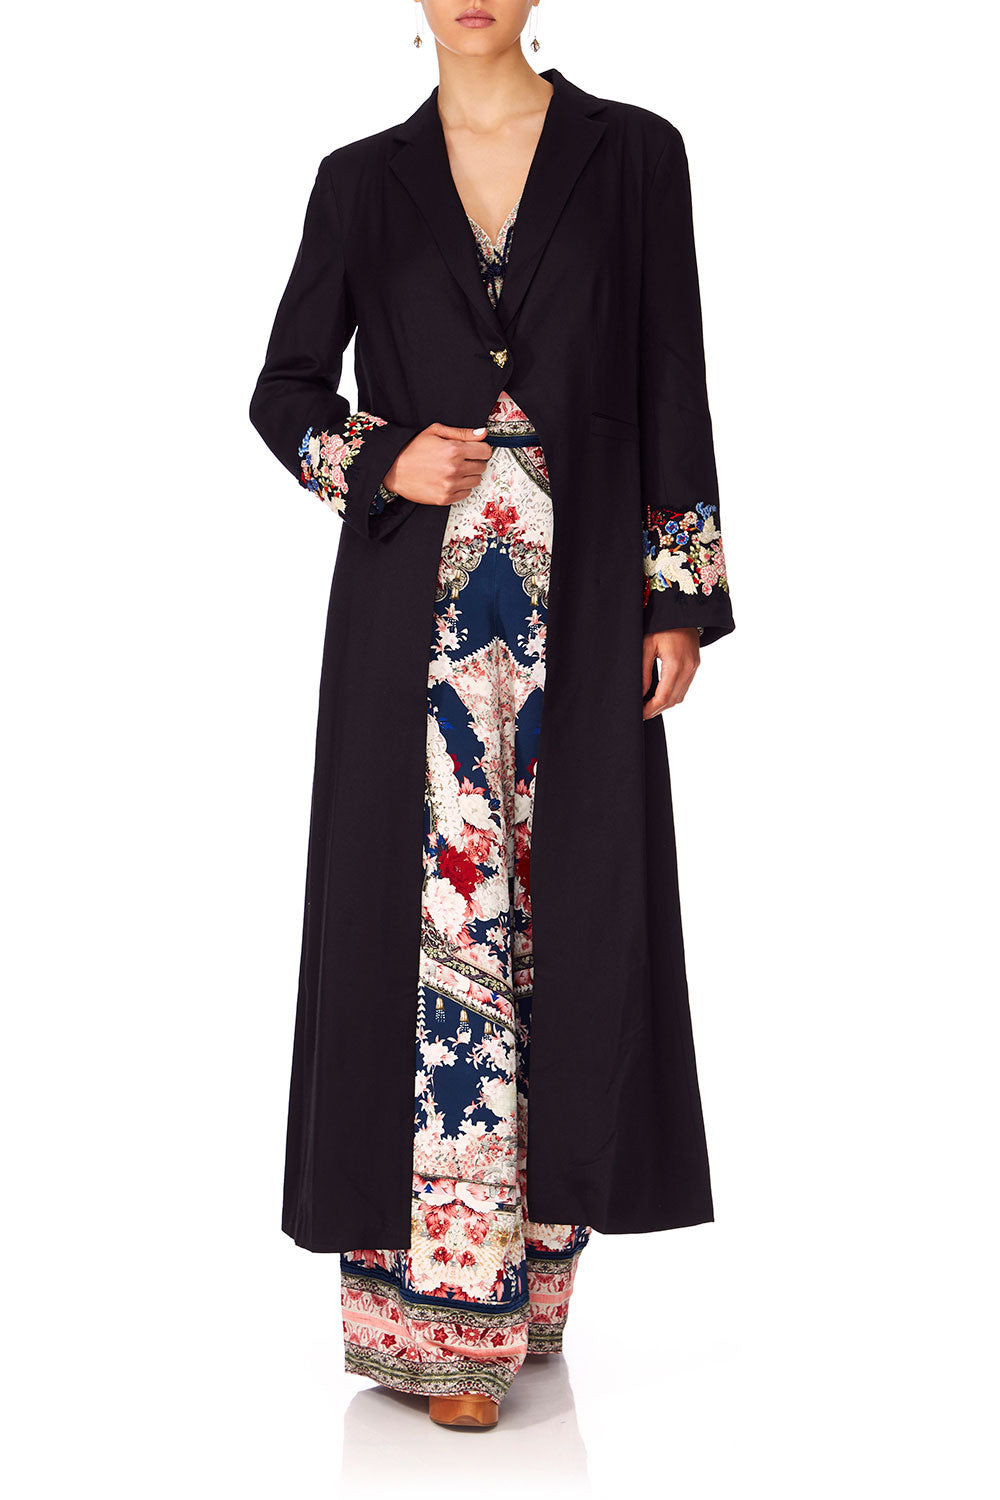 CAMILLA TWIN SHADOW LONG CUT AWAY COAT